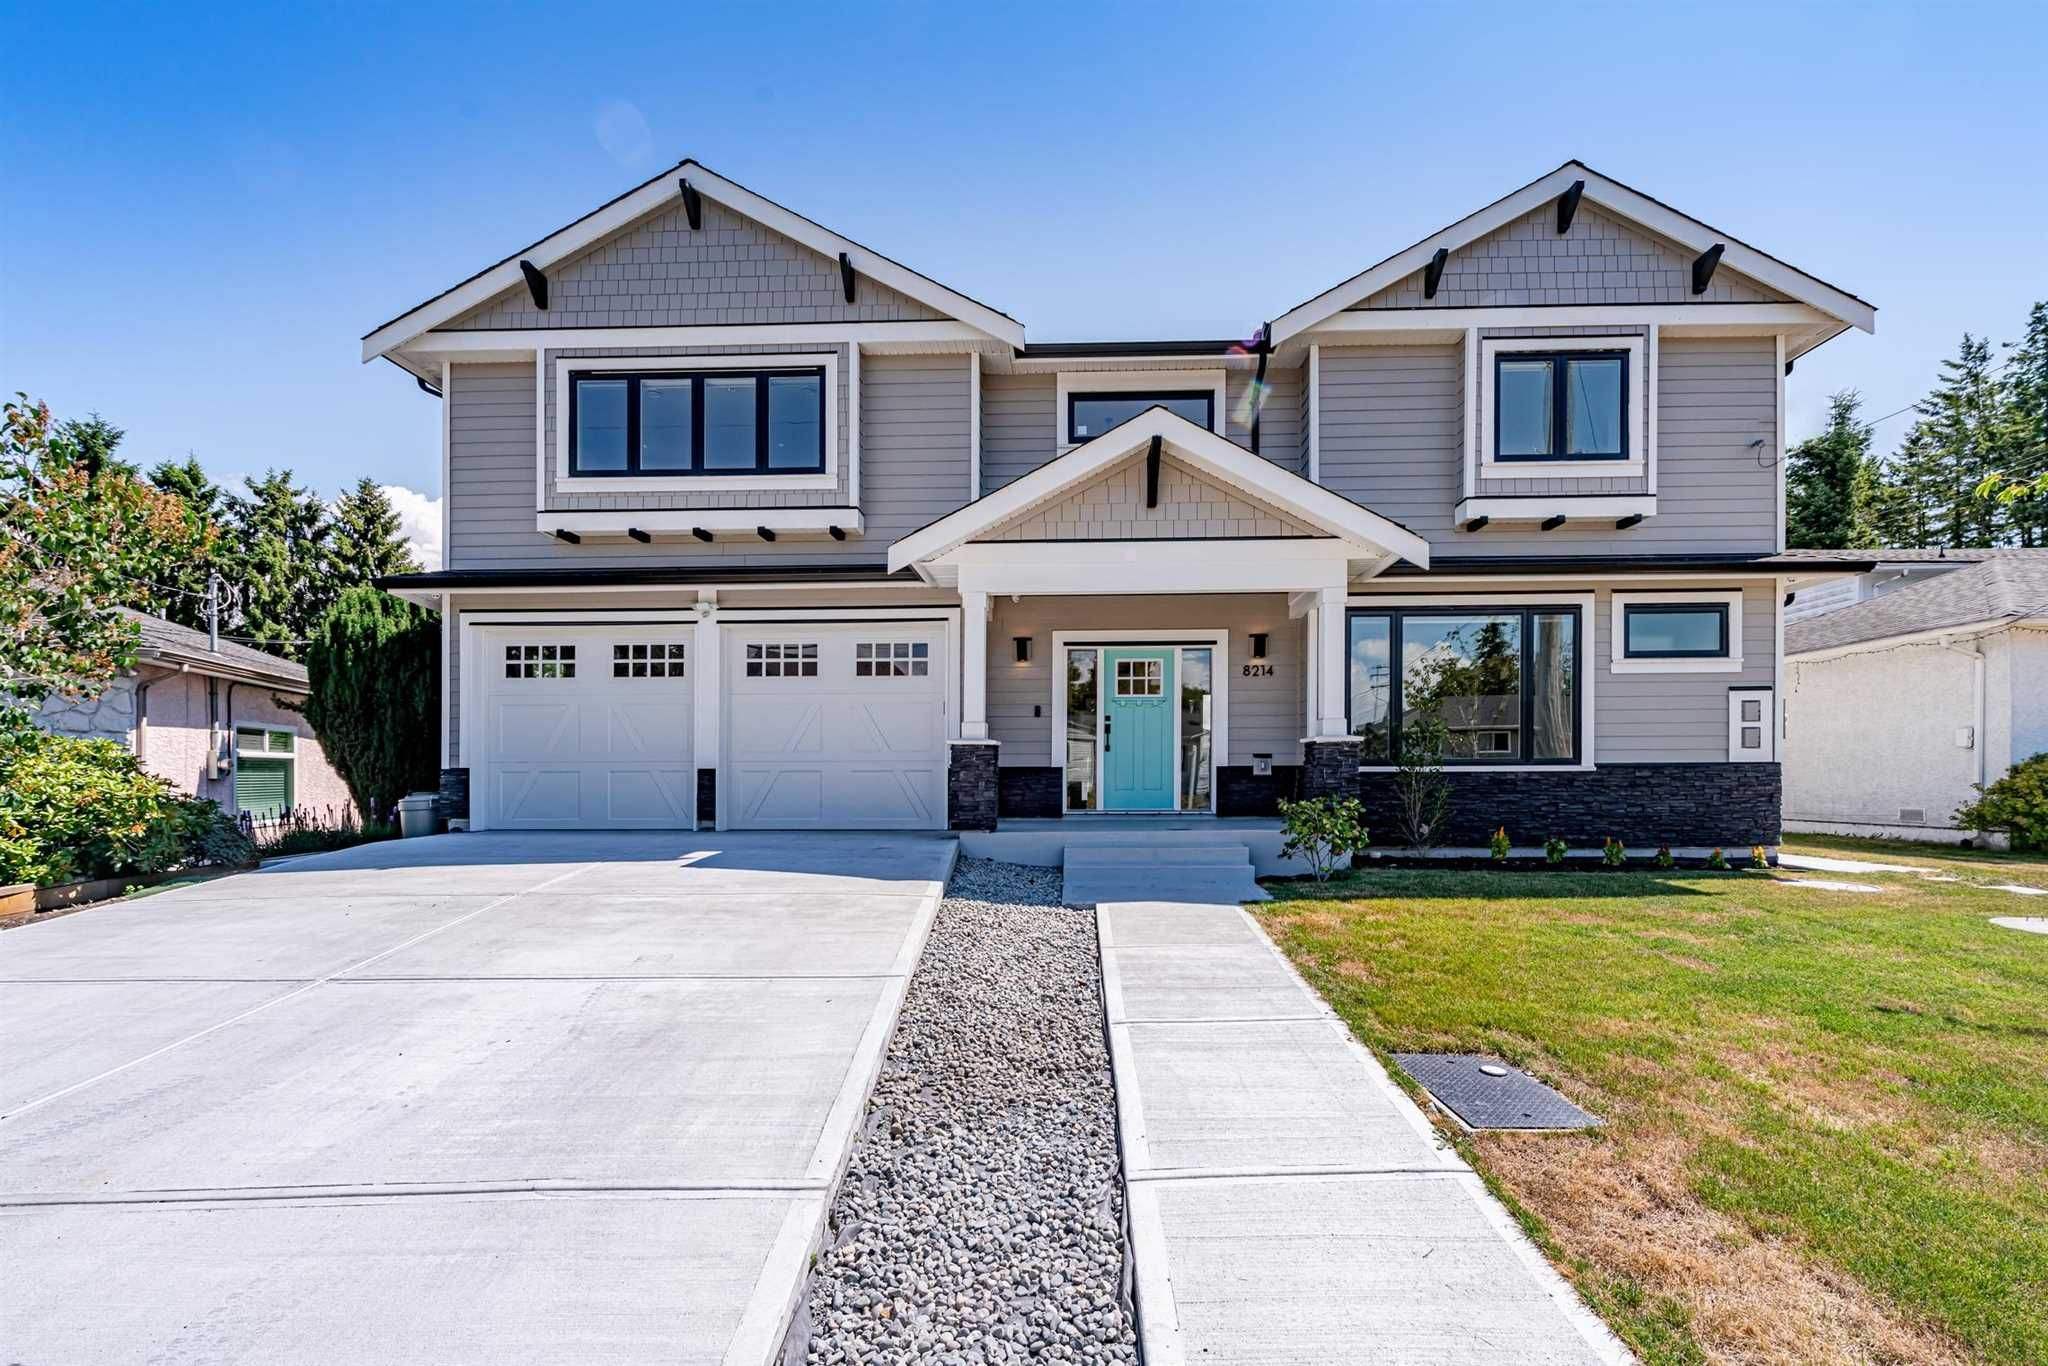 Main Photo: 8214 WADHAM Drive in Delta: Nordel House for sale (N. Delta)  : MLS®# R2605224